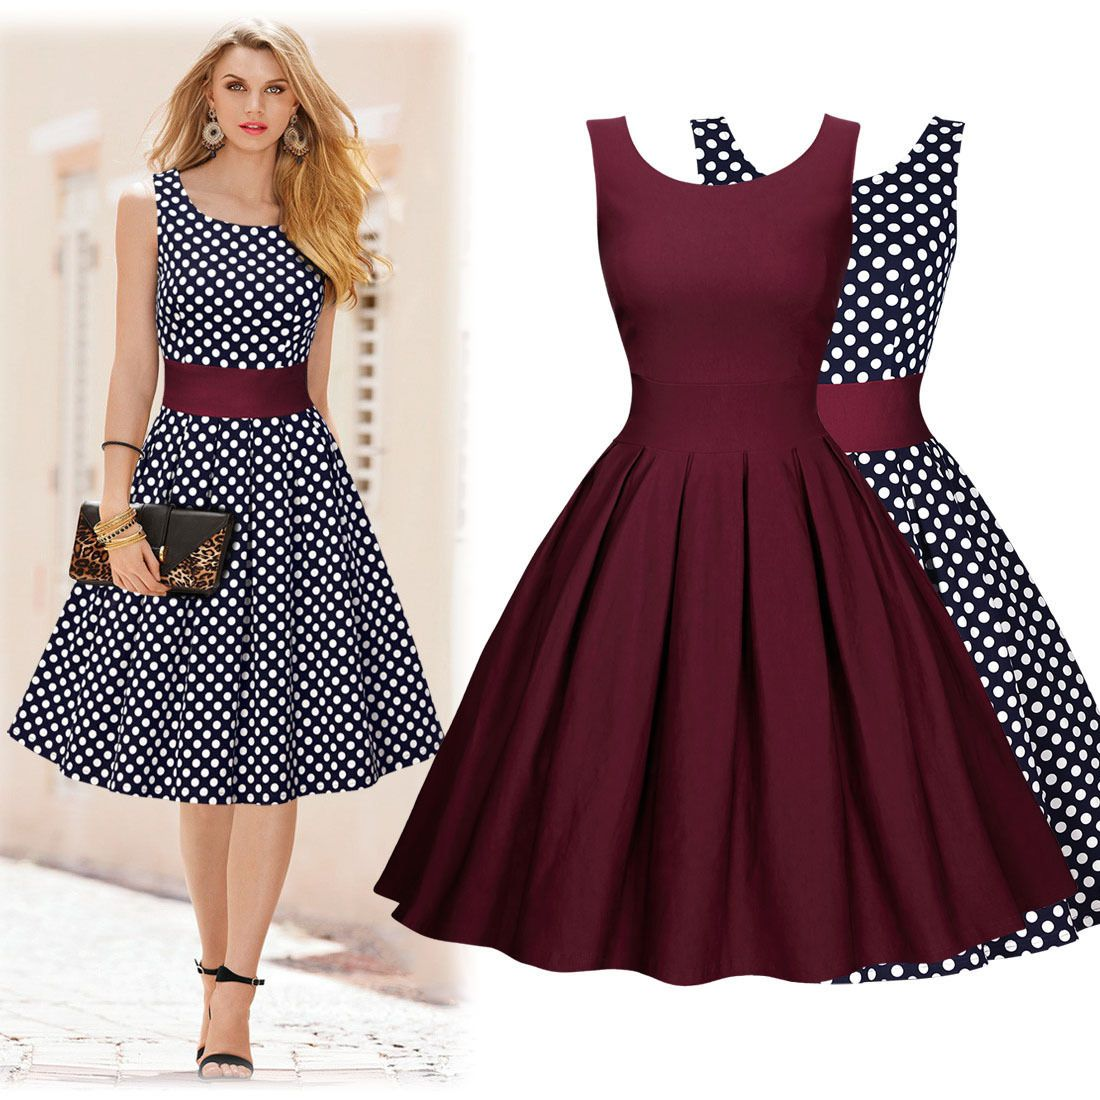 Awesome womens casual elegant polka dot cocktail party short prom